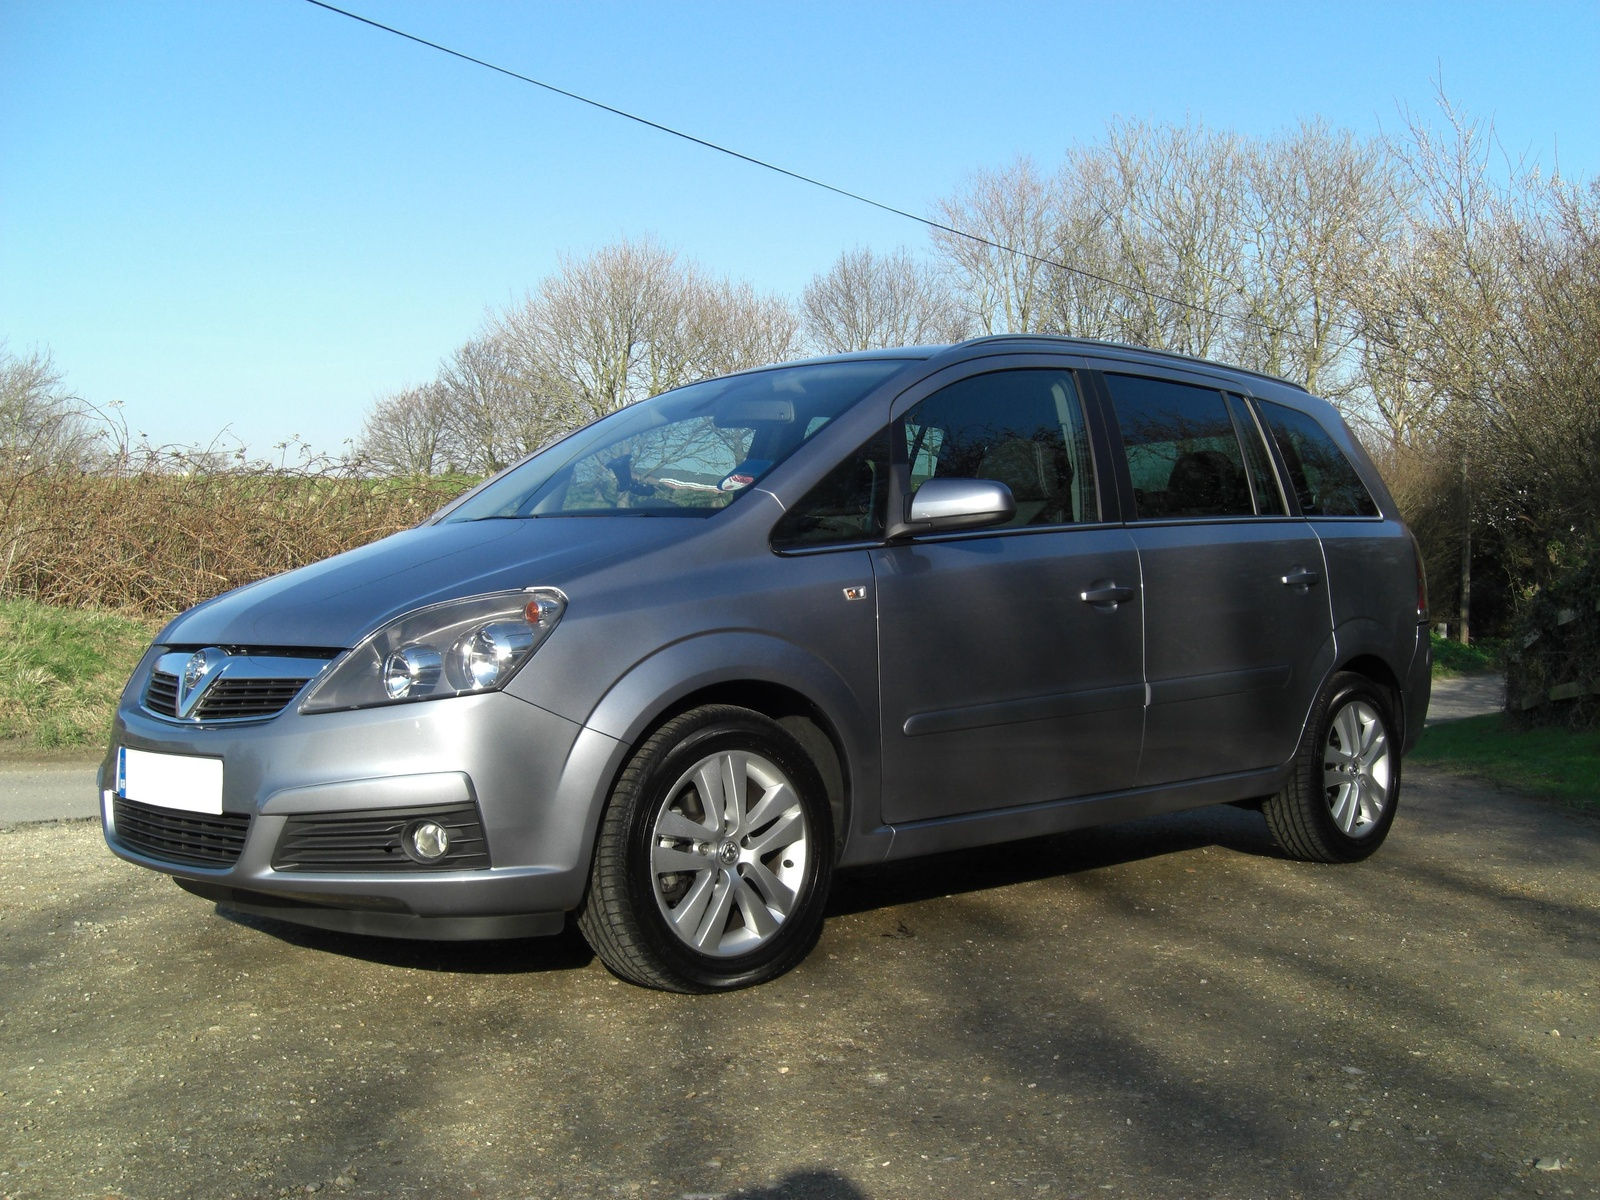 2007 vauxhall zafira pictures cargurus. Black Bedroom Furniture Sets. Home Design Ideas